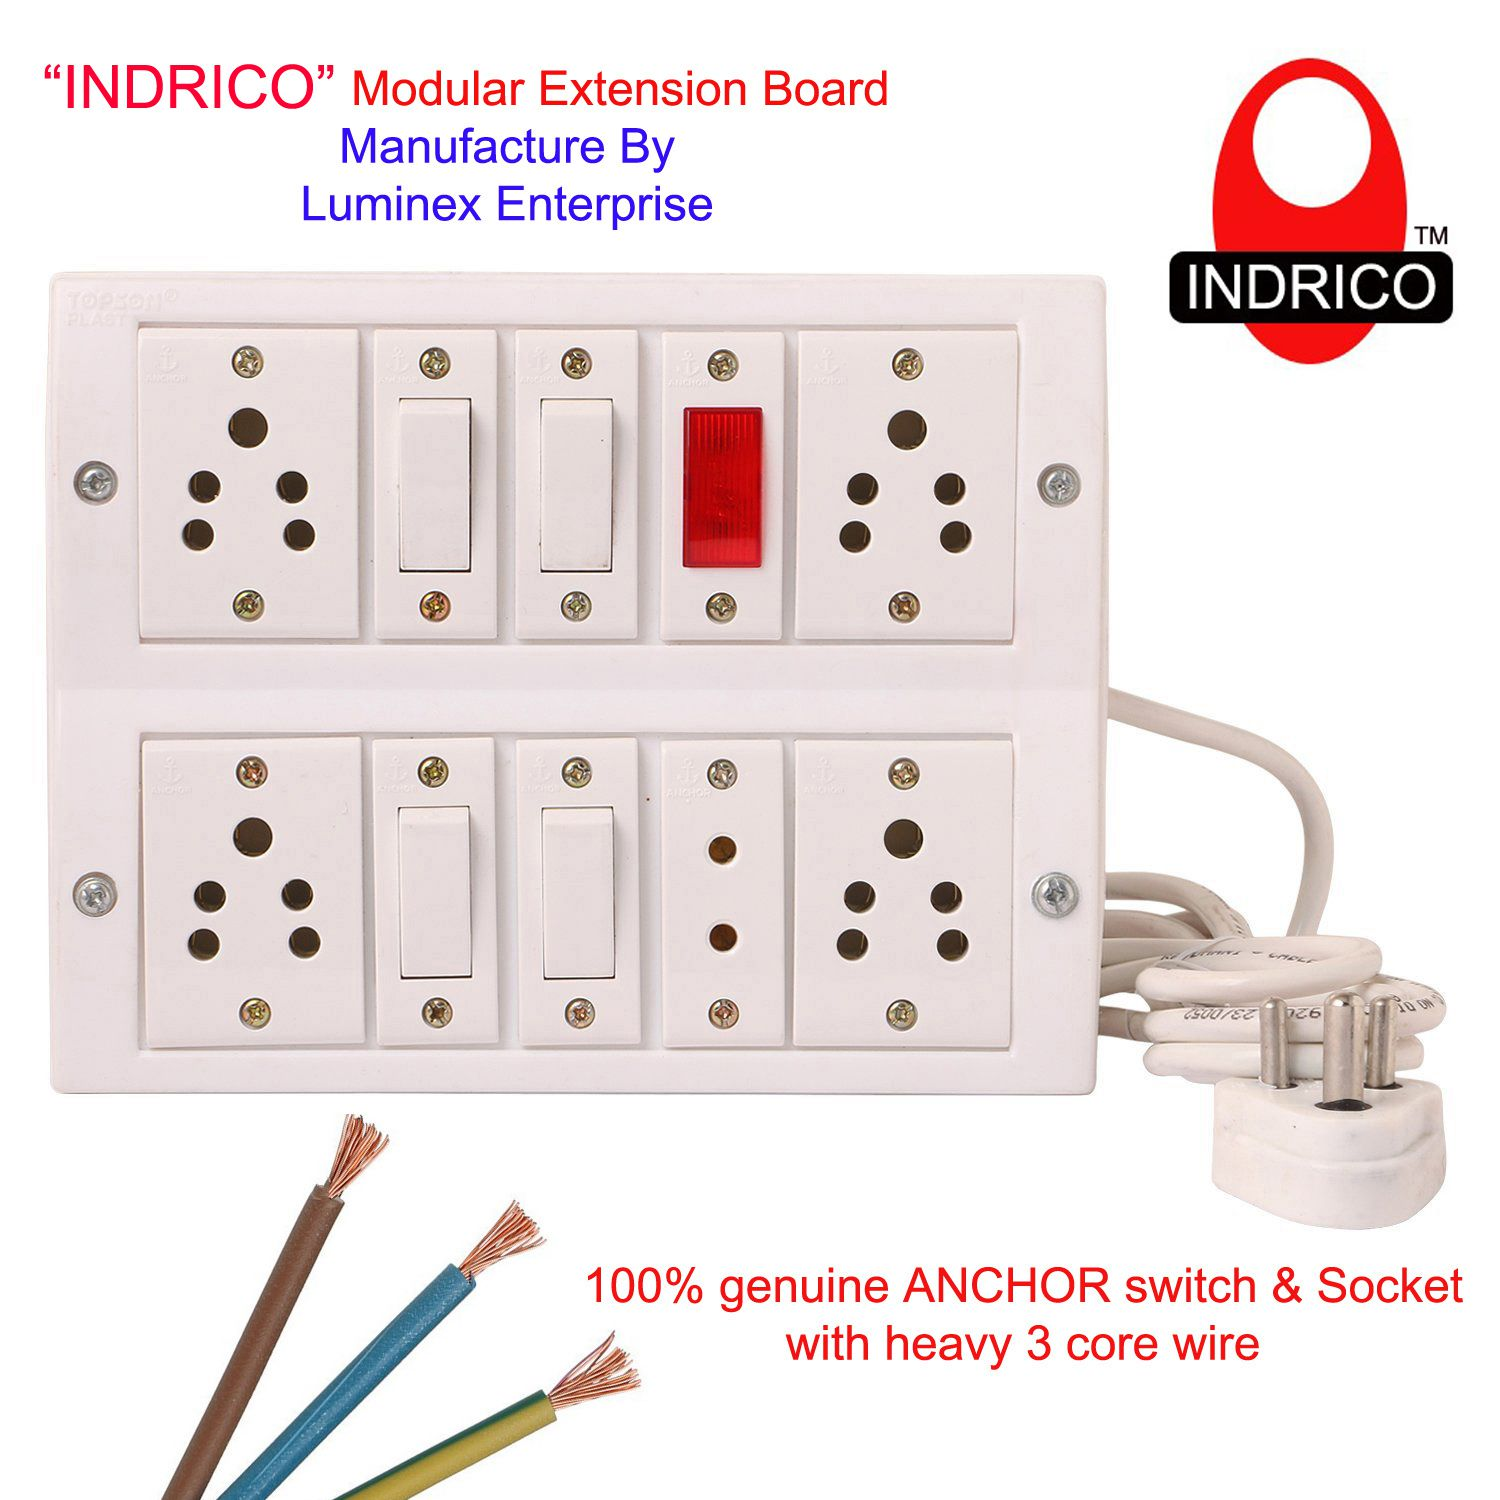 buy indrico switch board spike buster fitted with 5 anchor sockets 5 rh snapdeal com